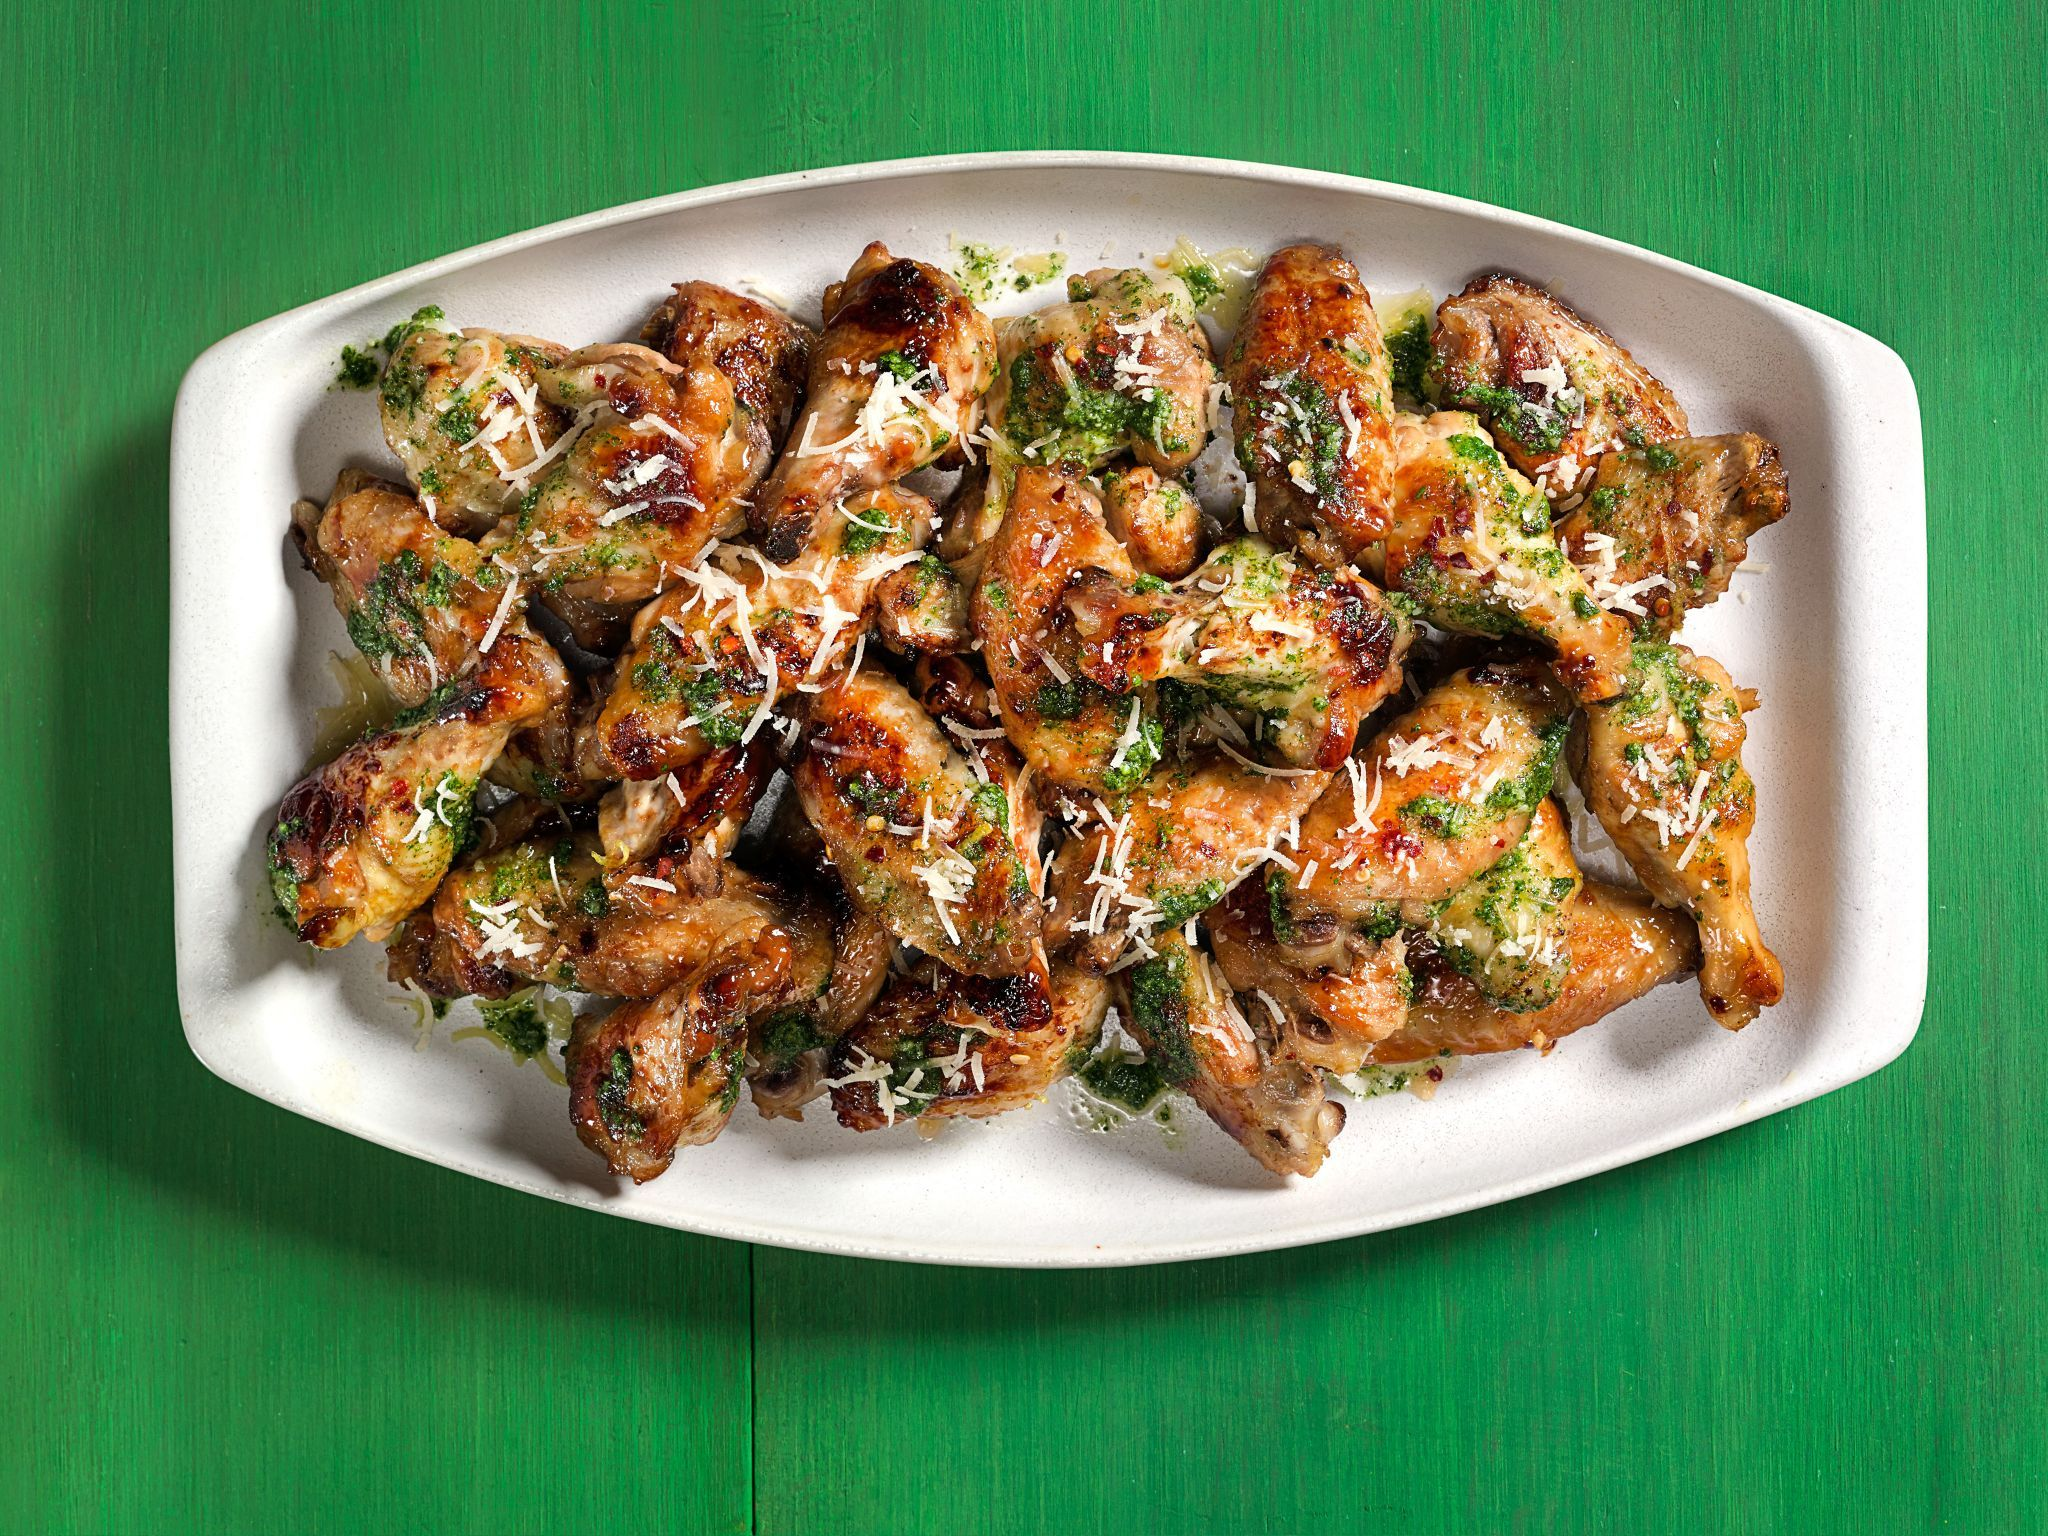 Get this all star easy to follow spicy pesto wings recipe from spicy pesto wings recipe from eddie jackson via food network forumfinder Images